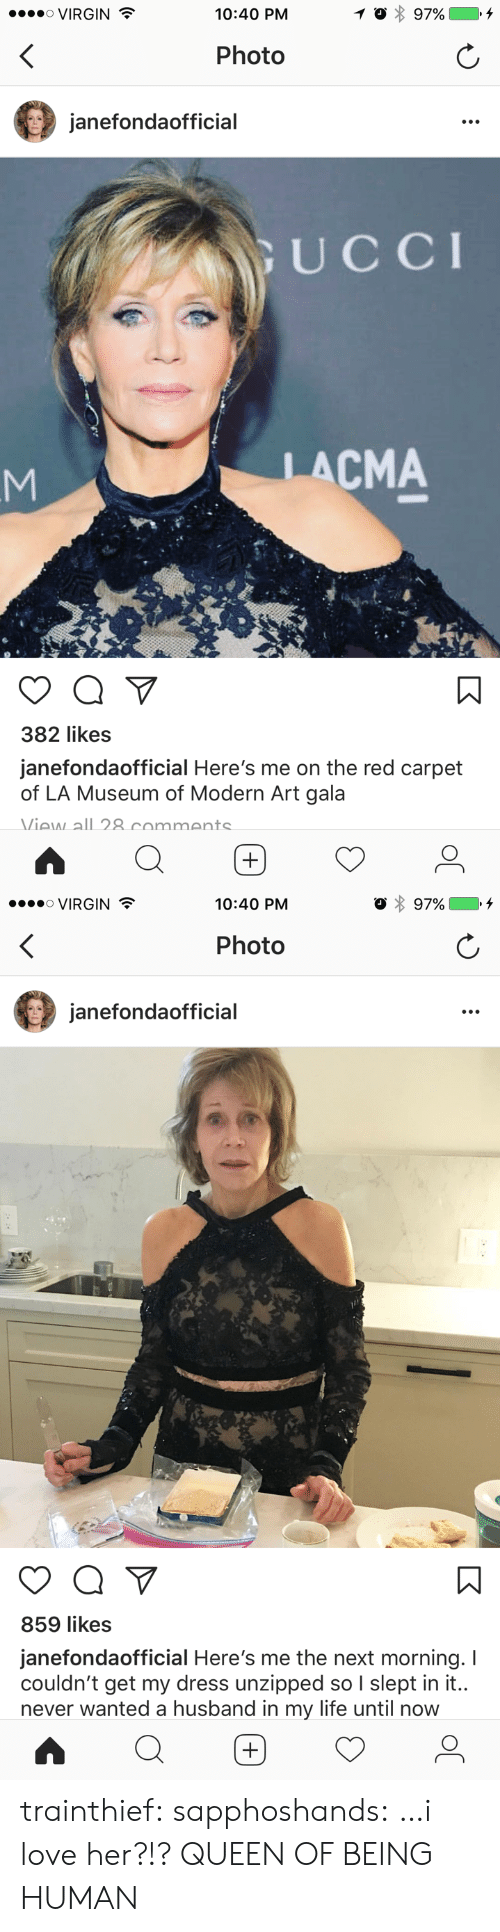 lacma: ....。VIRGIN  10:40 PM  Photo  janefondaofficial  UCCI  LACMA  382 likes  janefondaofficial Here's me on the red carpet  of LA Museum of Modern Art gala  Viaw all 8 commants   VIRGIN  10:40 PM  Photo  janefondaofficial  859 likes  janefondaofficial Here's me the next morning. I  couldn't get my dress unzipped so I slept in it..  never wanted a husband in my life until now trainthief: sapphoshands: …i love her?!? QUEEN OF BEING HUMAN